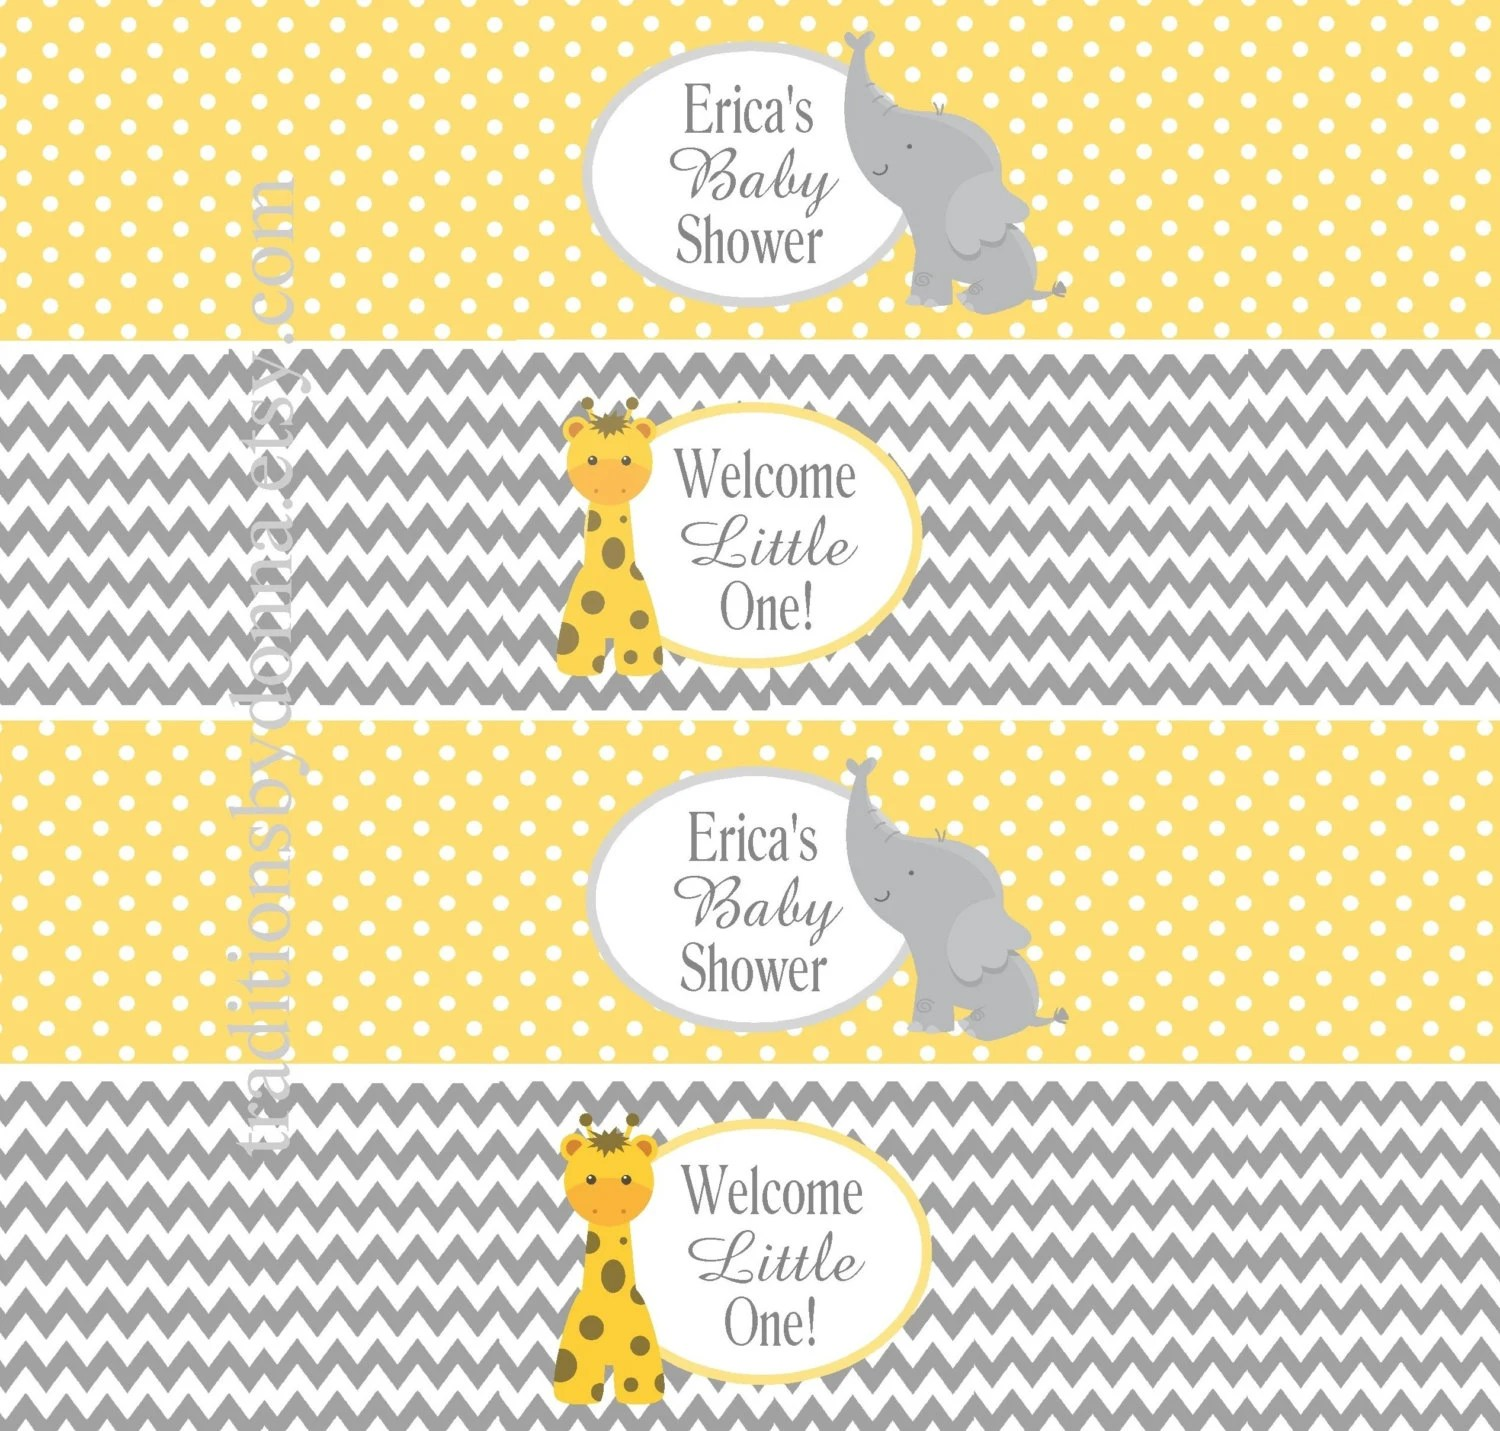 Baby Shower Water Bottle Labels Personalized Yellow Gray Chevron Printable Digital File Cute